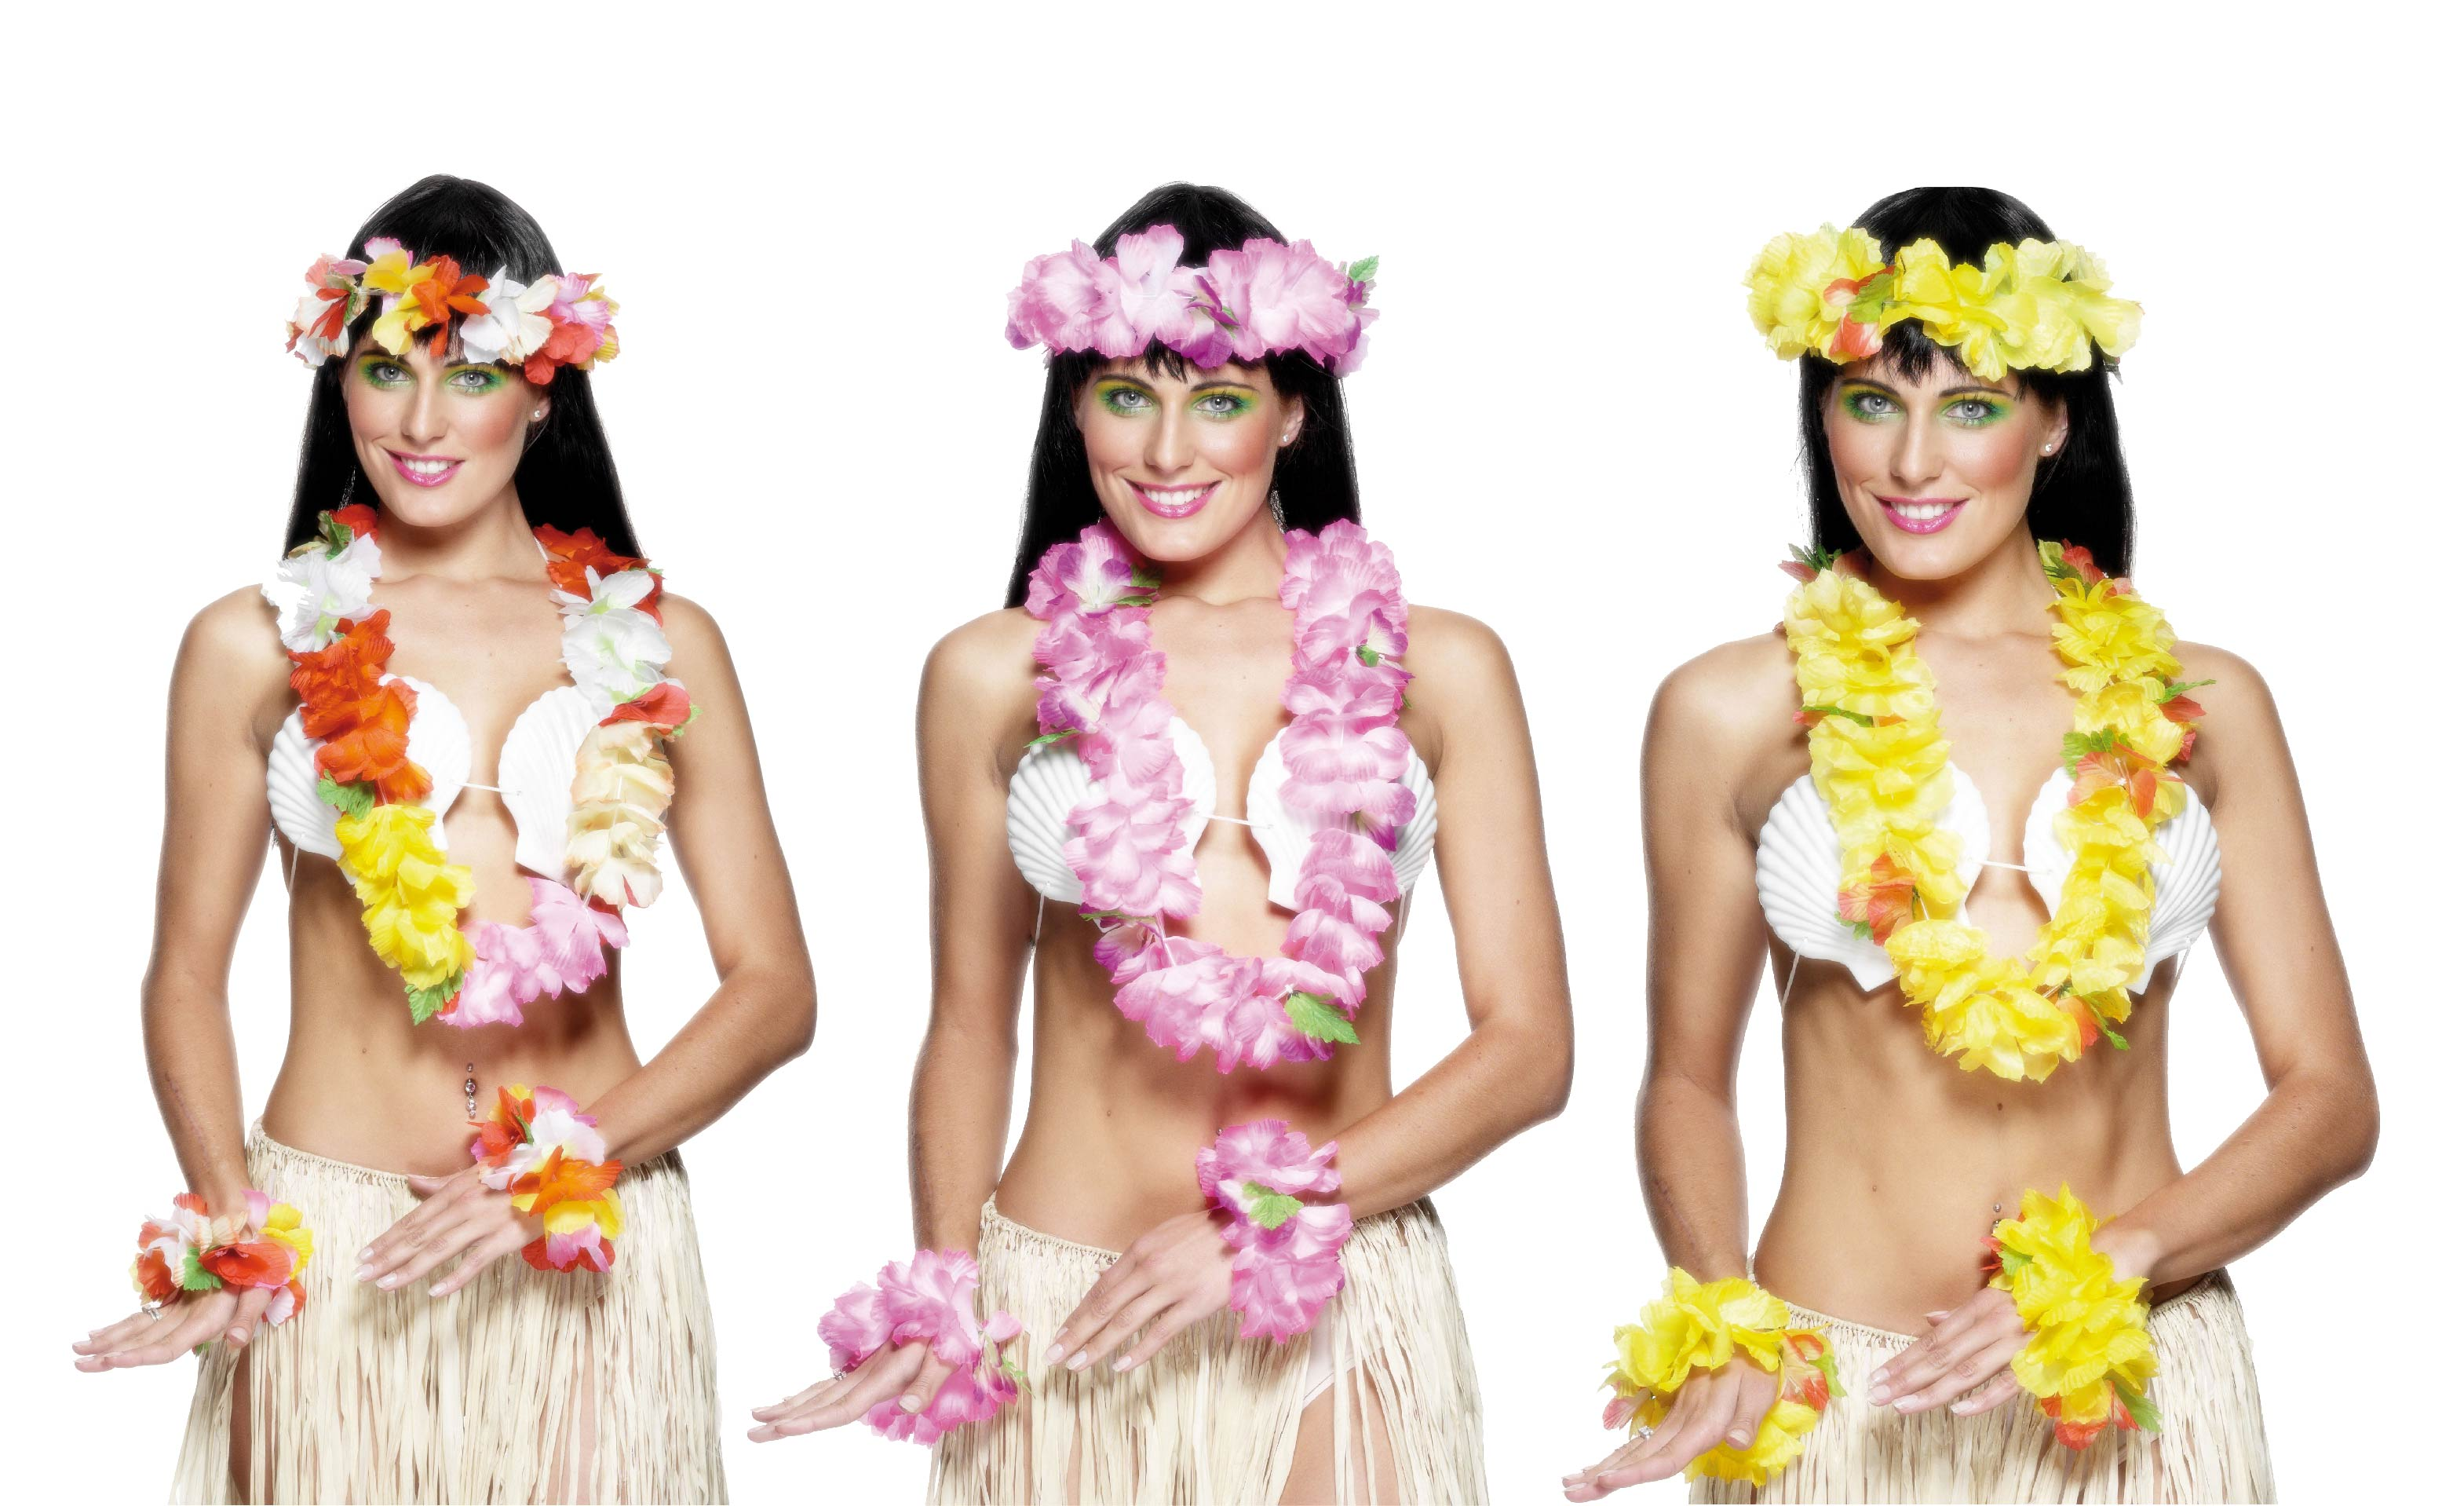 Women wearing Hawaiian skirts and shell bras for group costume.